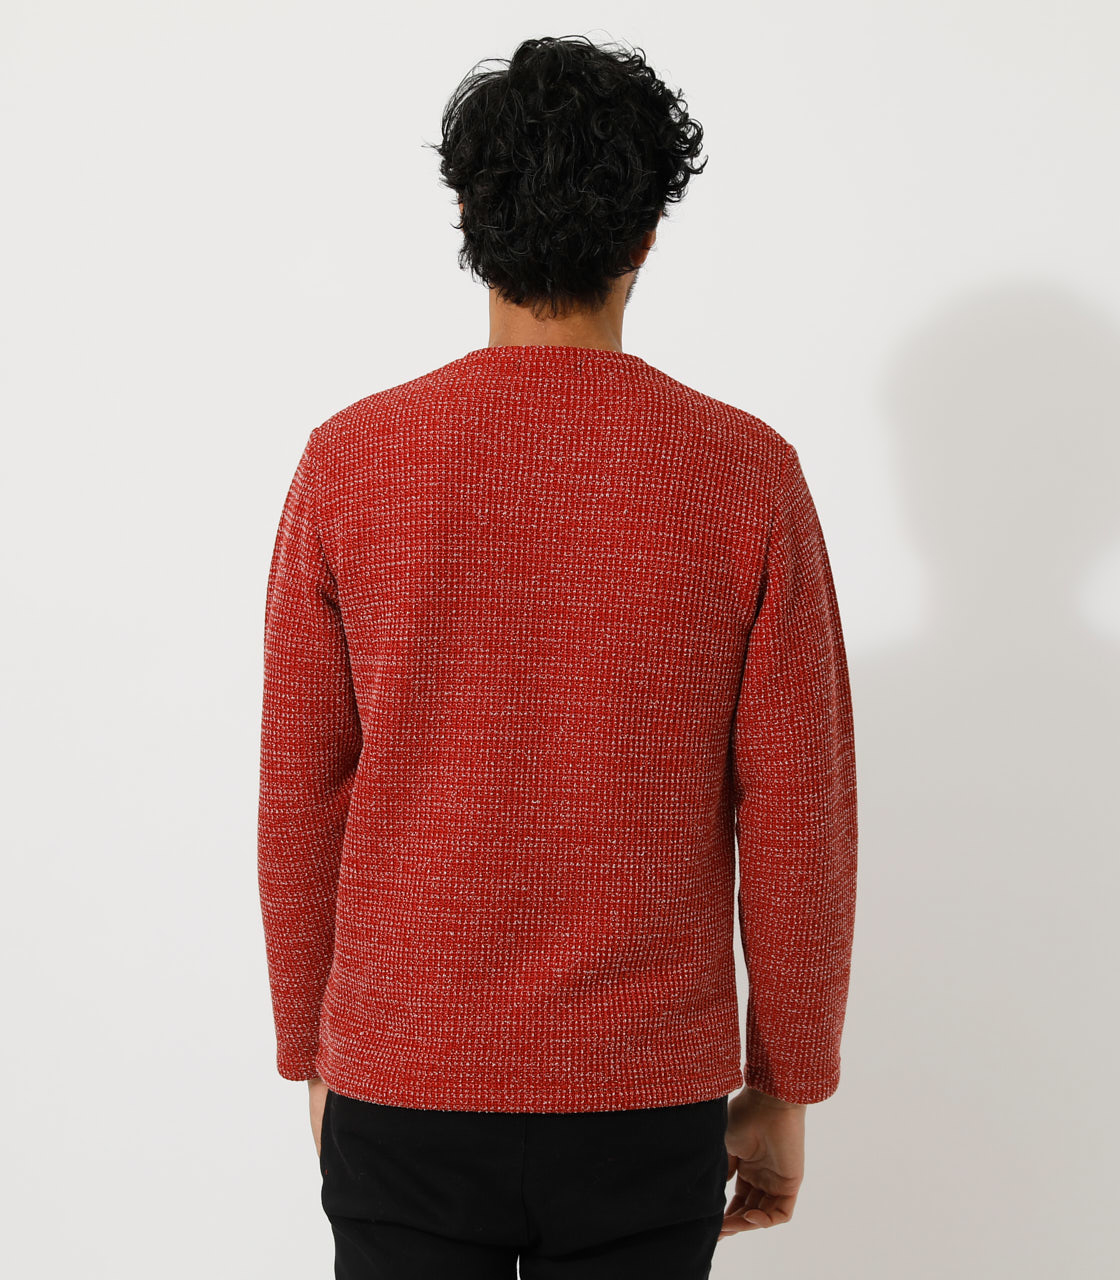 BRUSHED WAFFLE V/N LONG TEE/ブラッシュドワッフルVネックロングTシャツ 詳細画像 柄RED 6